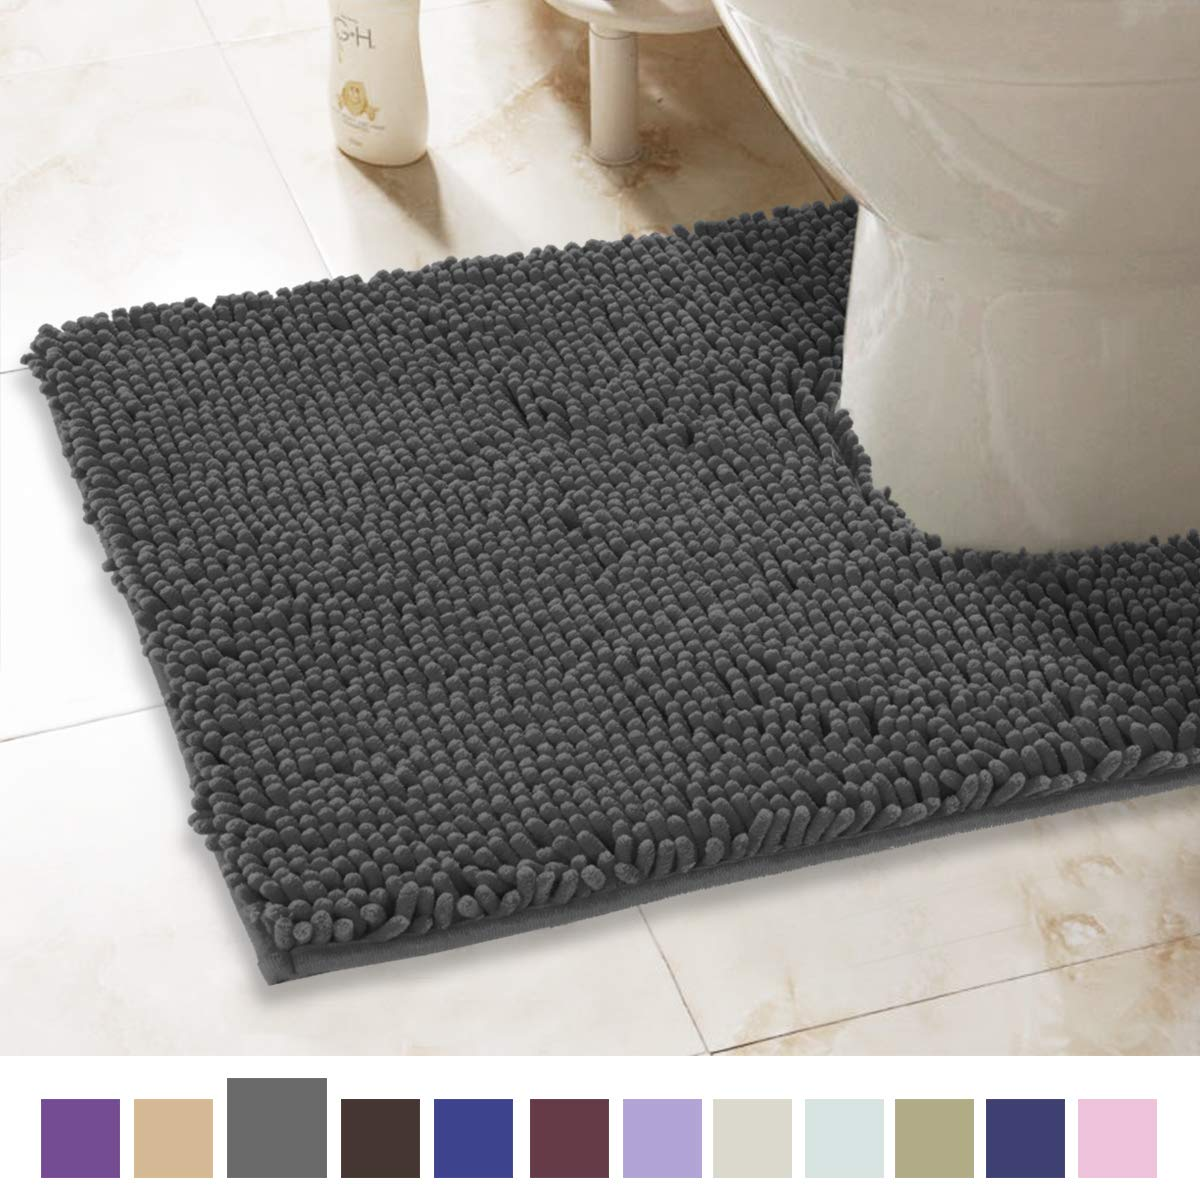 ITSOFT Non-Slip Shaggy Chenille Toilet Contour Bathroom Rug with Water Absorbent, Machine Washable, 21 x 24 Inches U-Shaped Charcoalgray